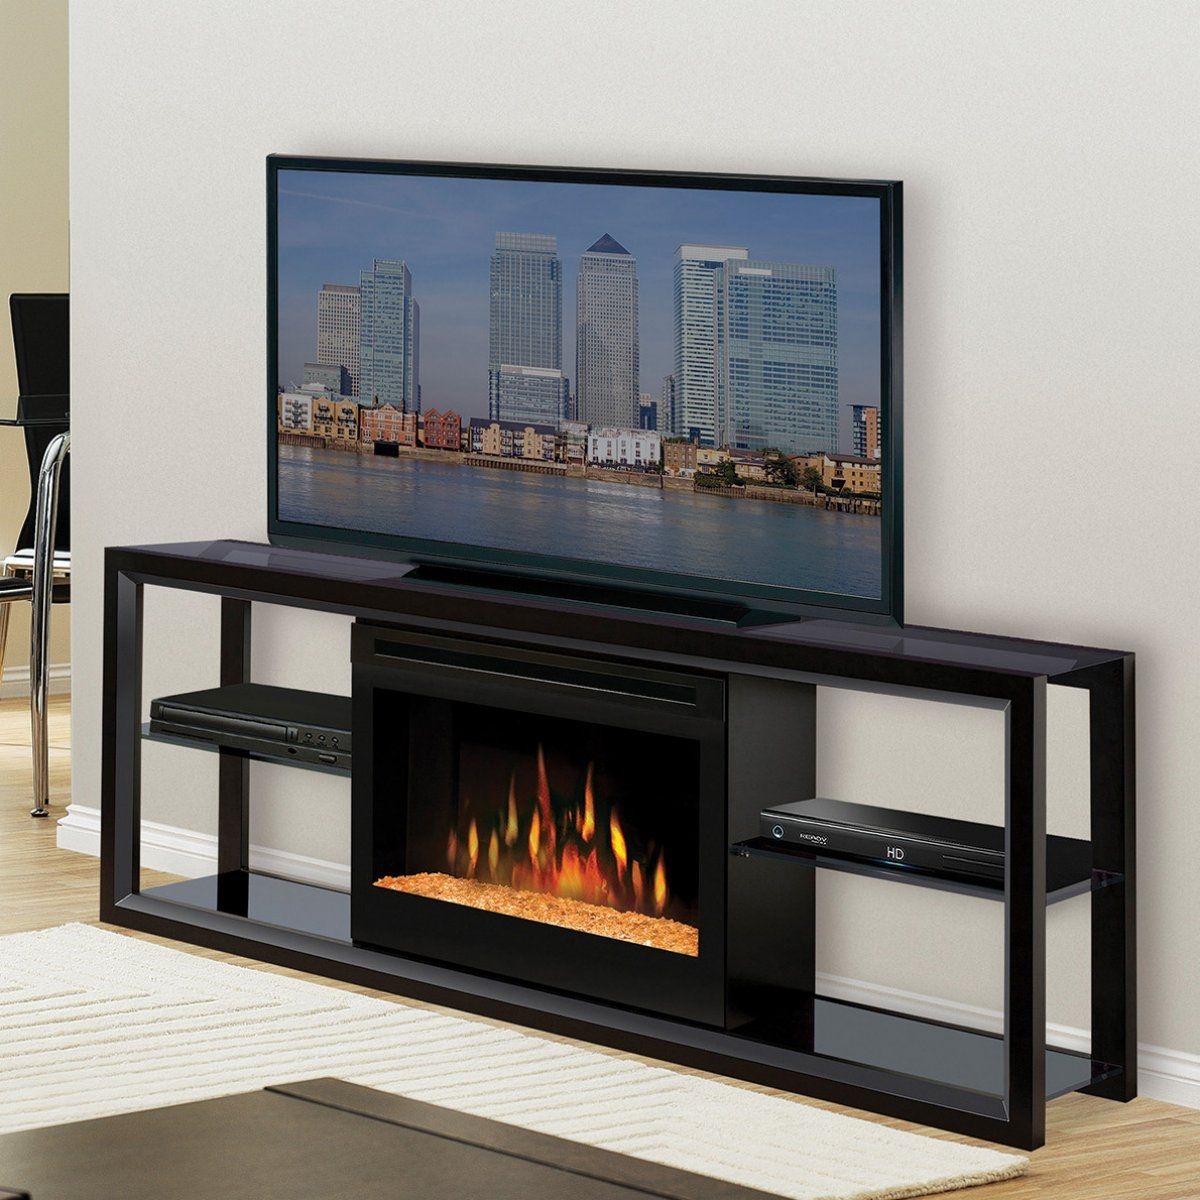 Electric fireplace insert and Electric fireplace media center